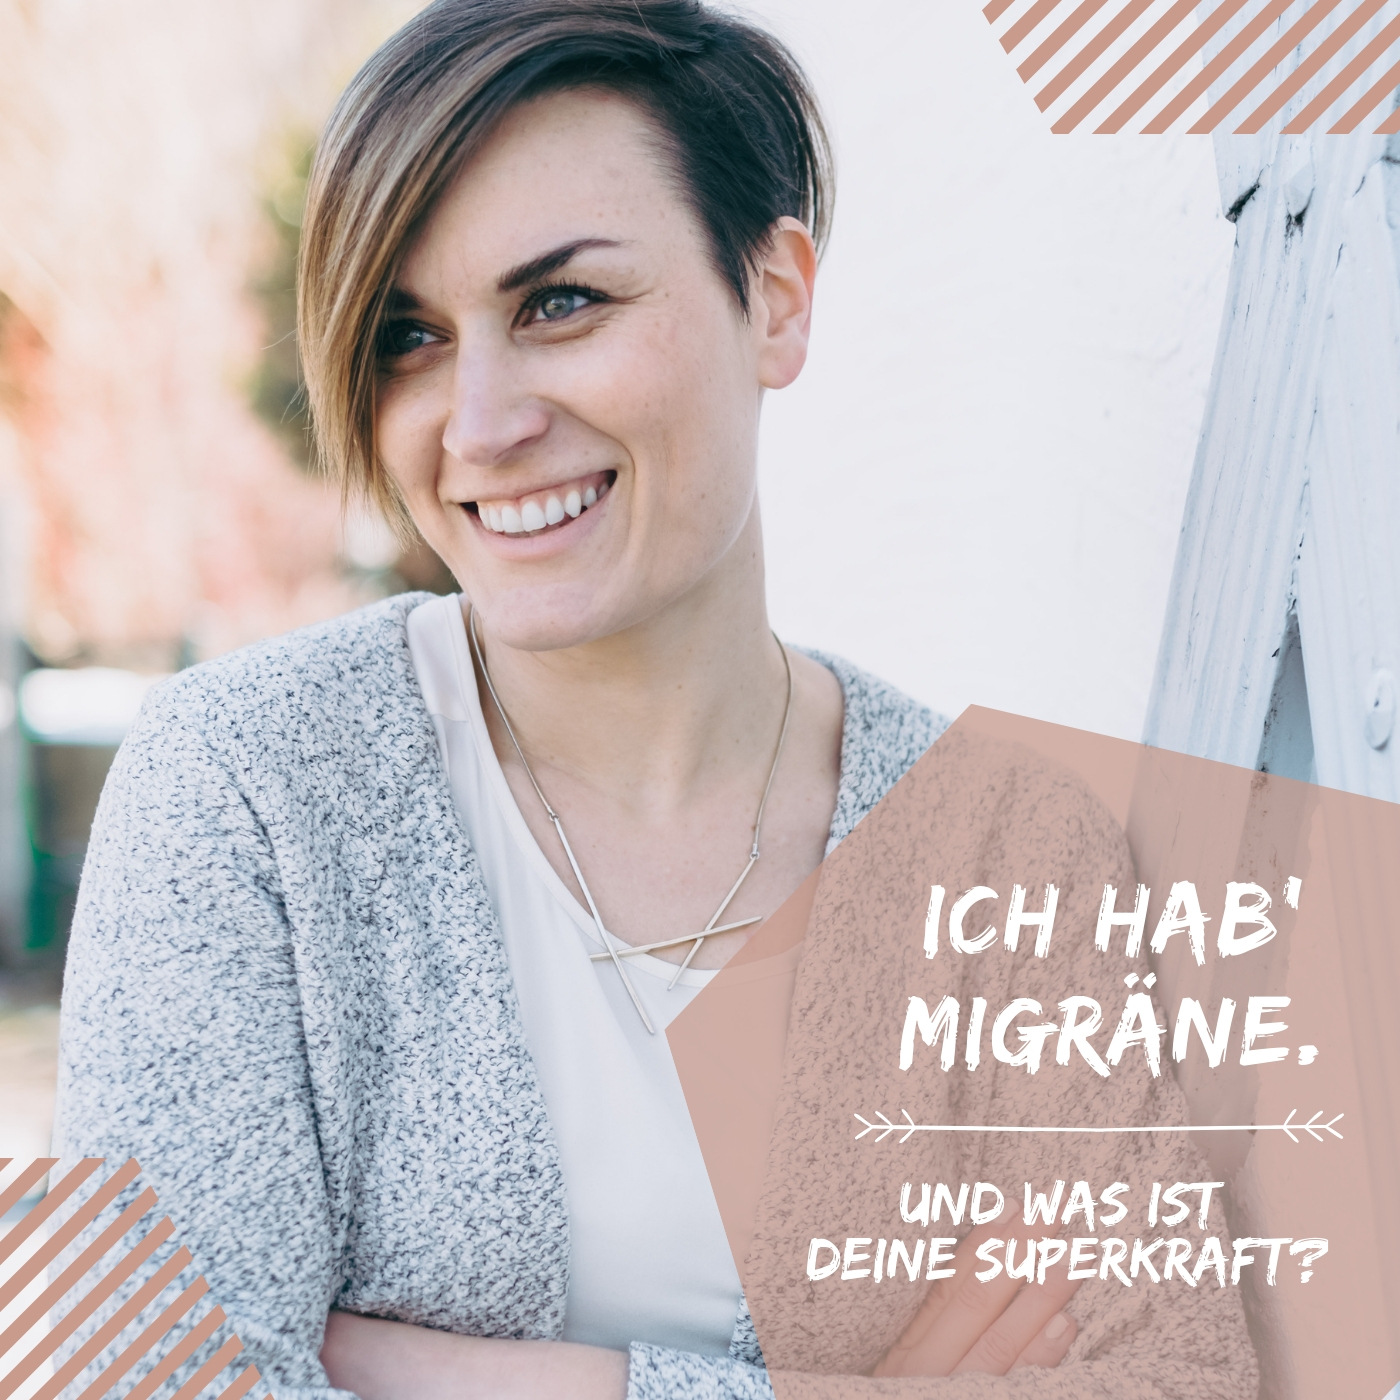 Podcast_Migräne-Superkraft_Cover_BiancaLeppert.jpg